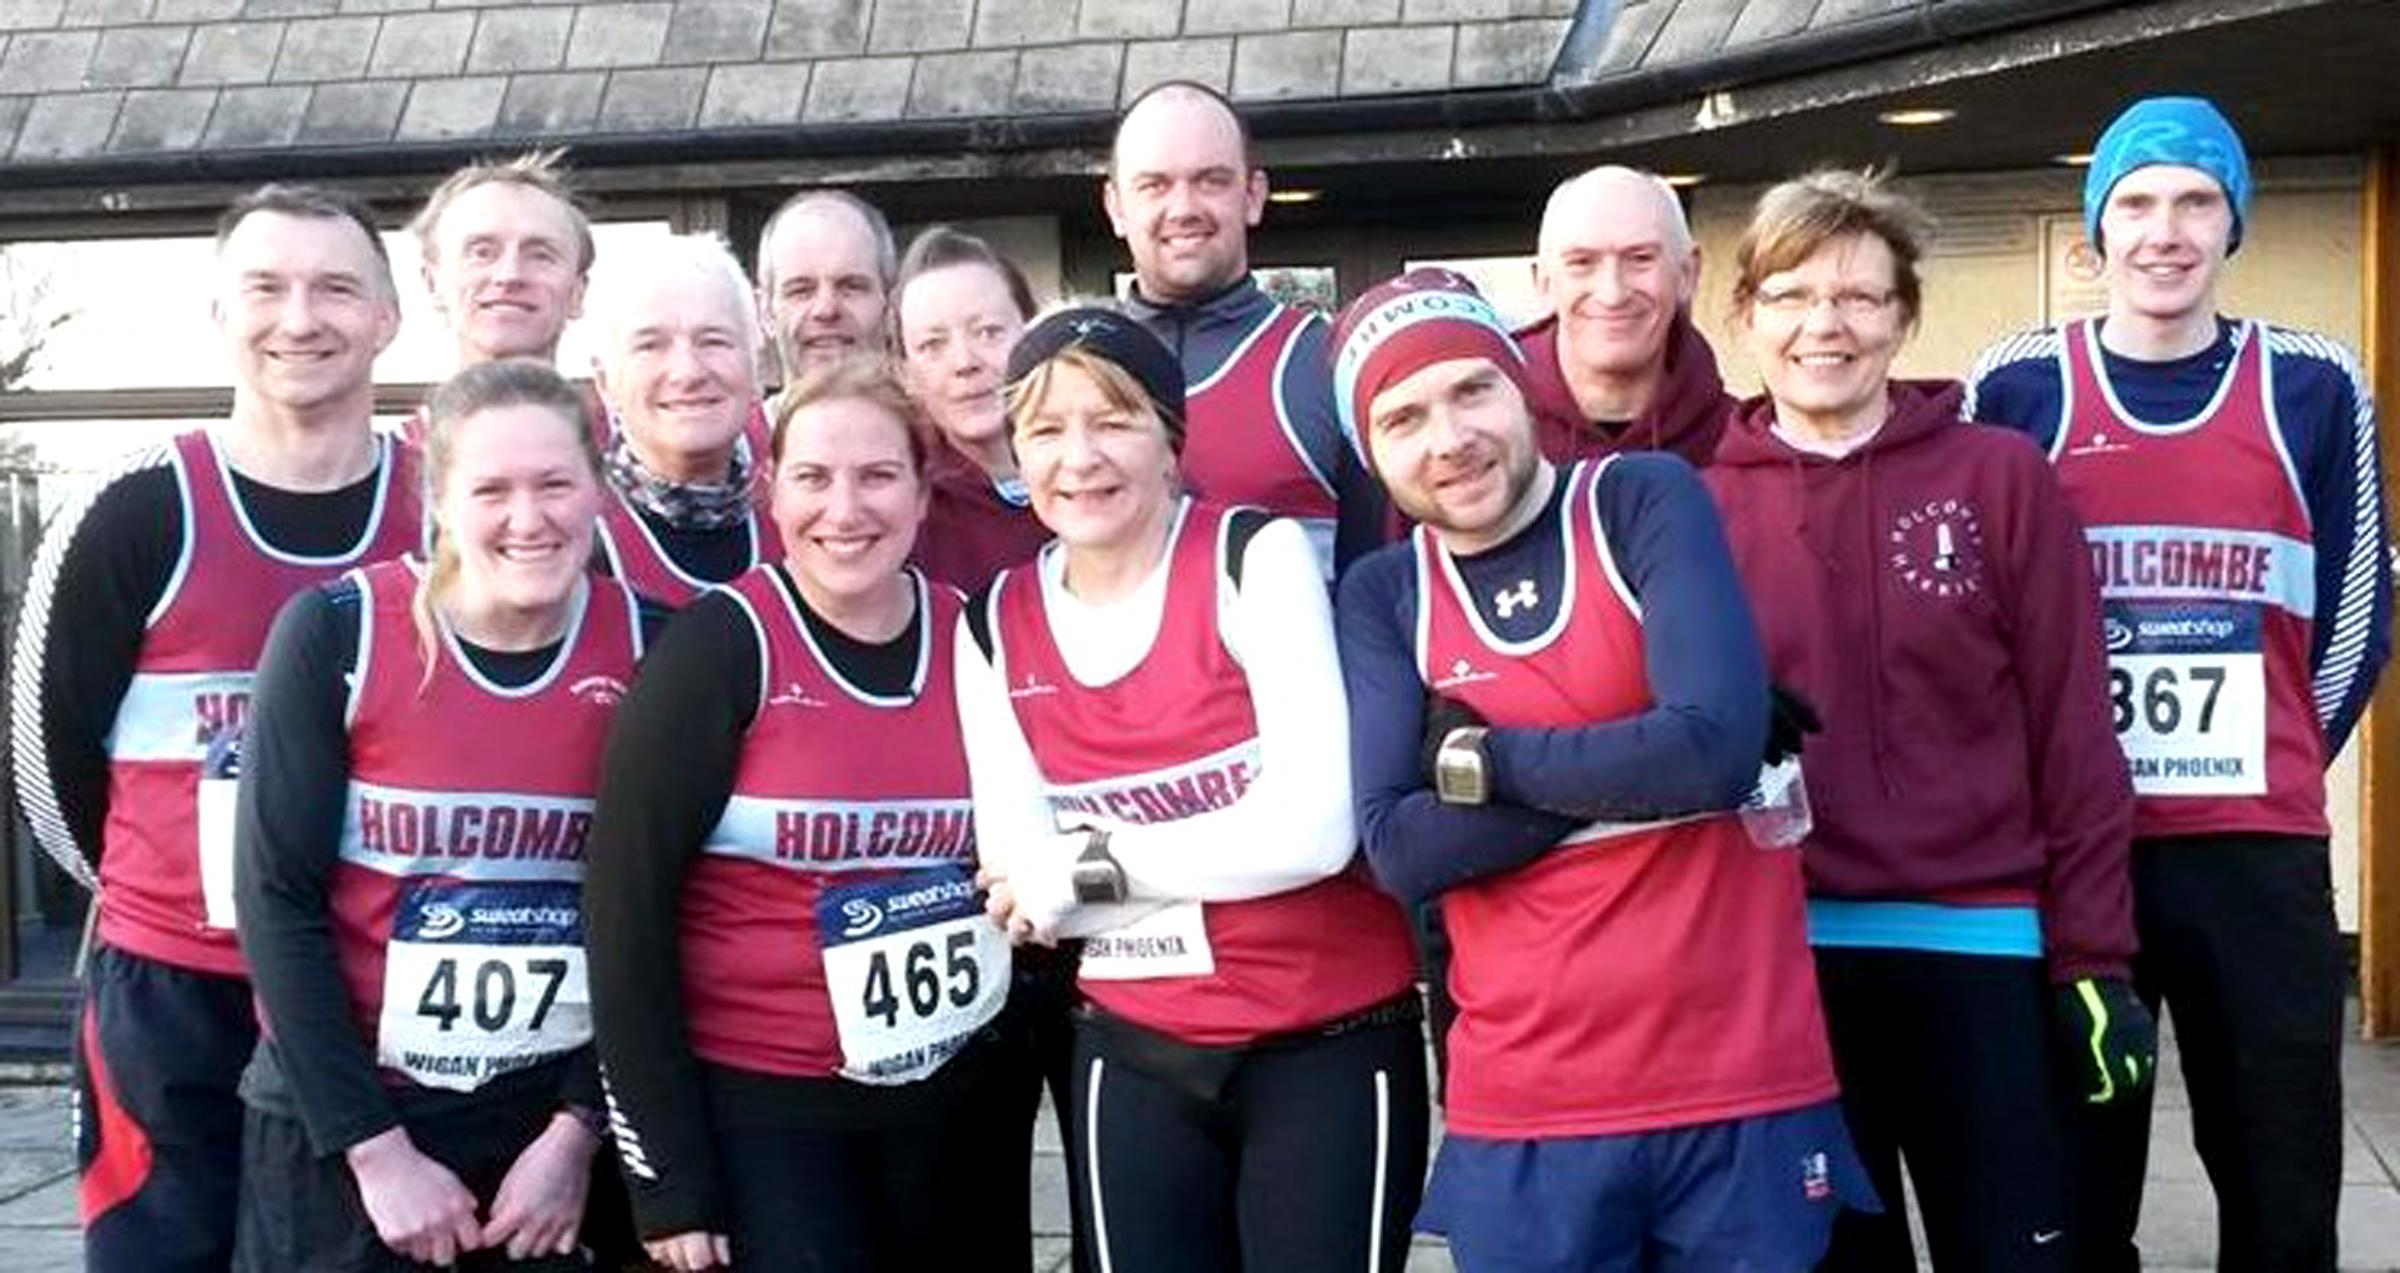 FELL GUYS: Members of Holcombe Harriers who have grown from humble beginnings